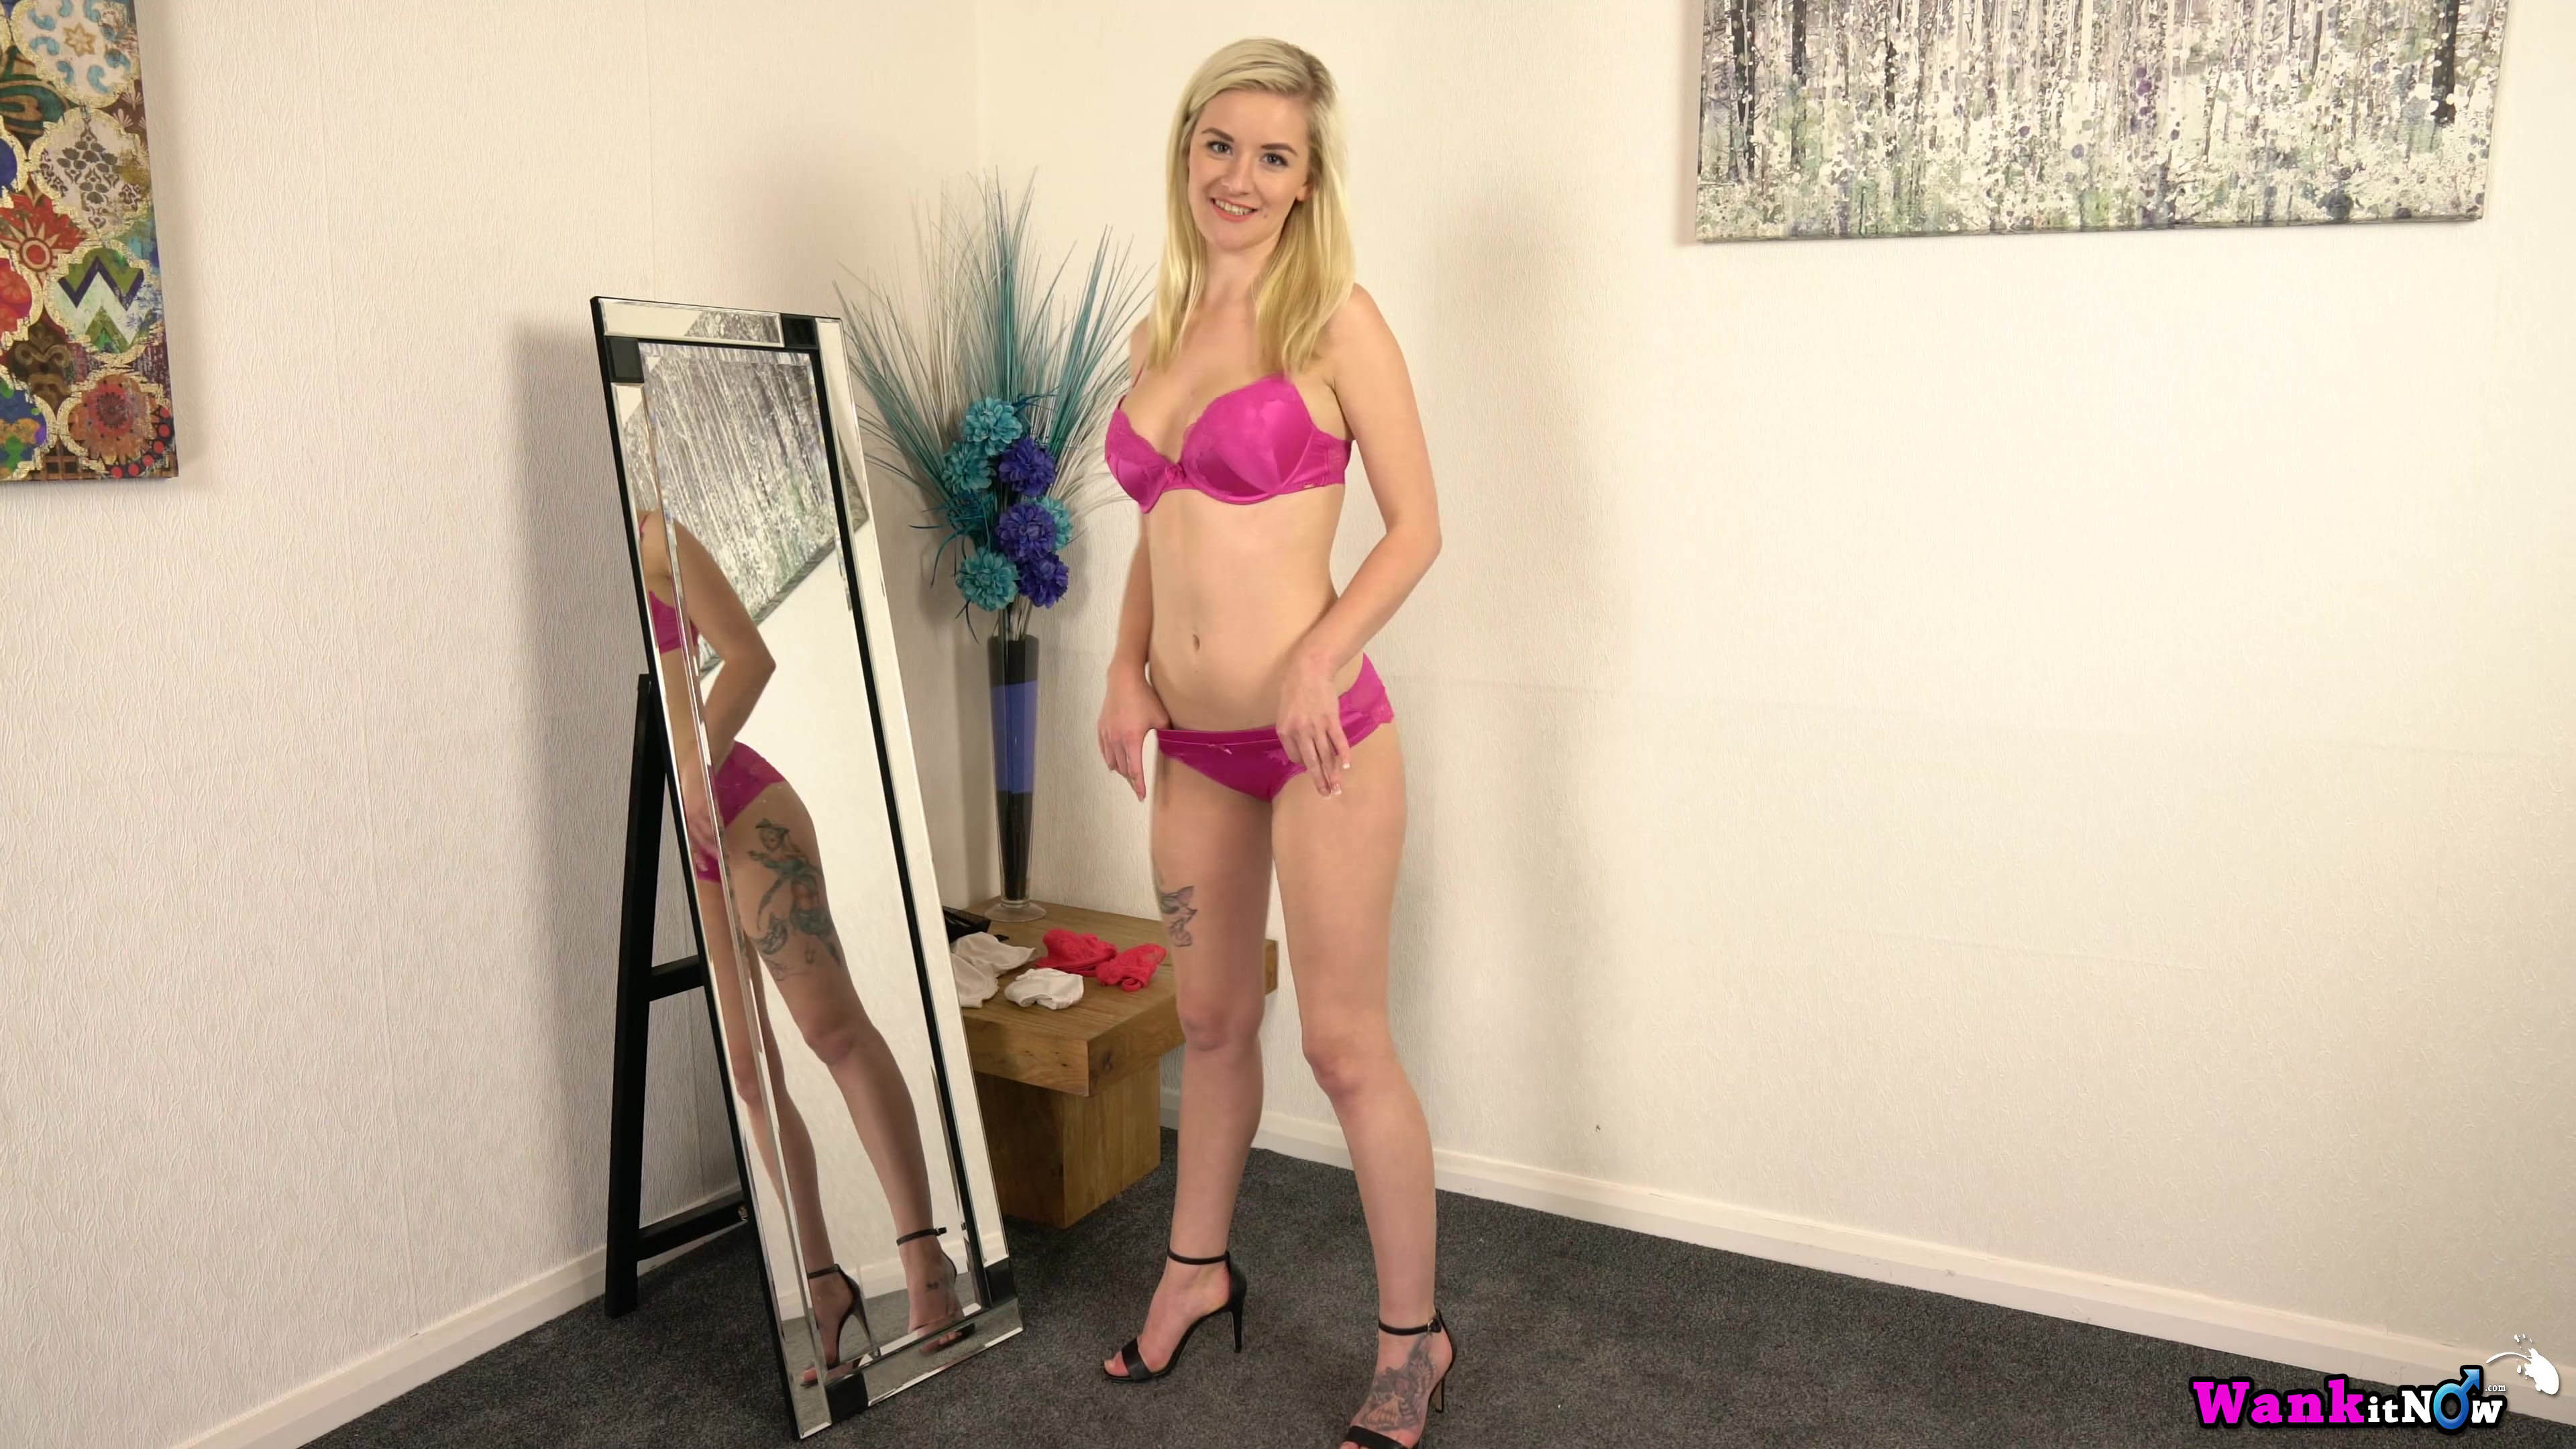 Wankitnow – slender british cutie grace puts off her new lingerie to tease in front of a mirror #5